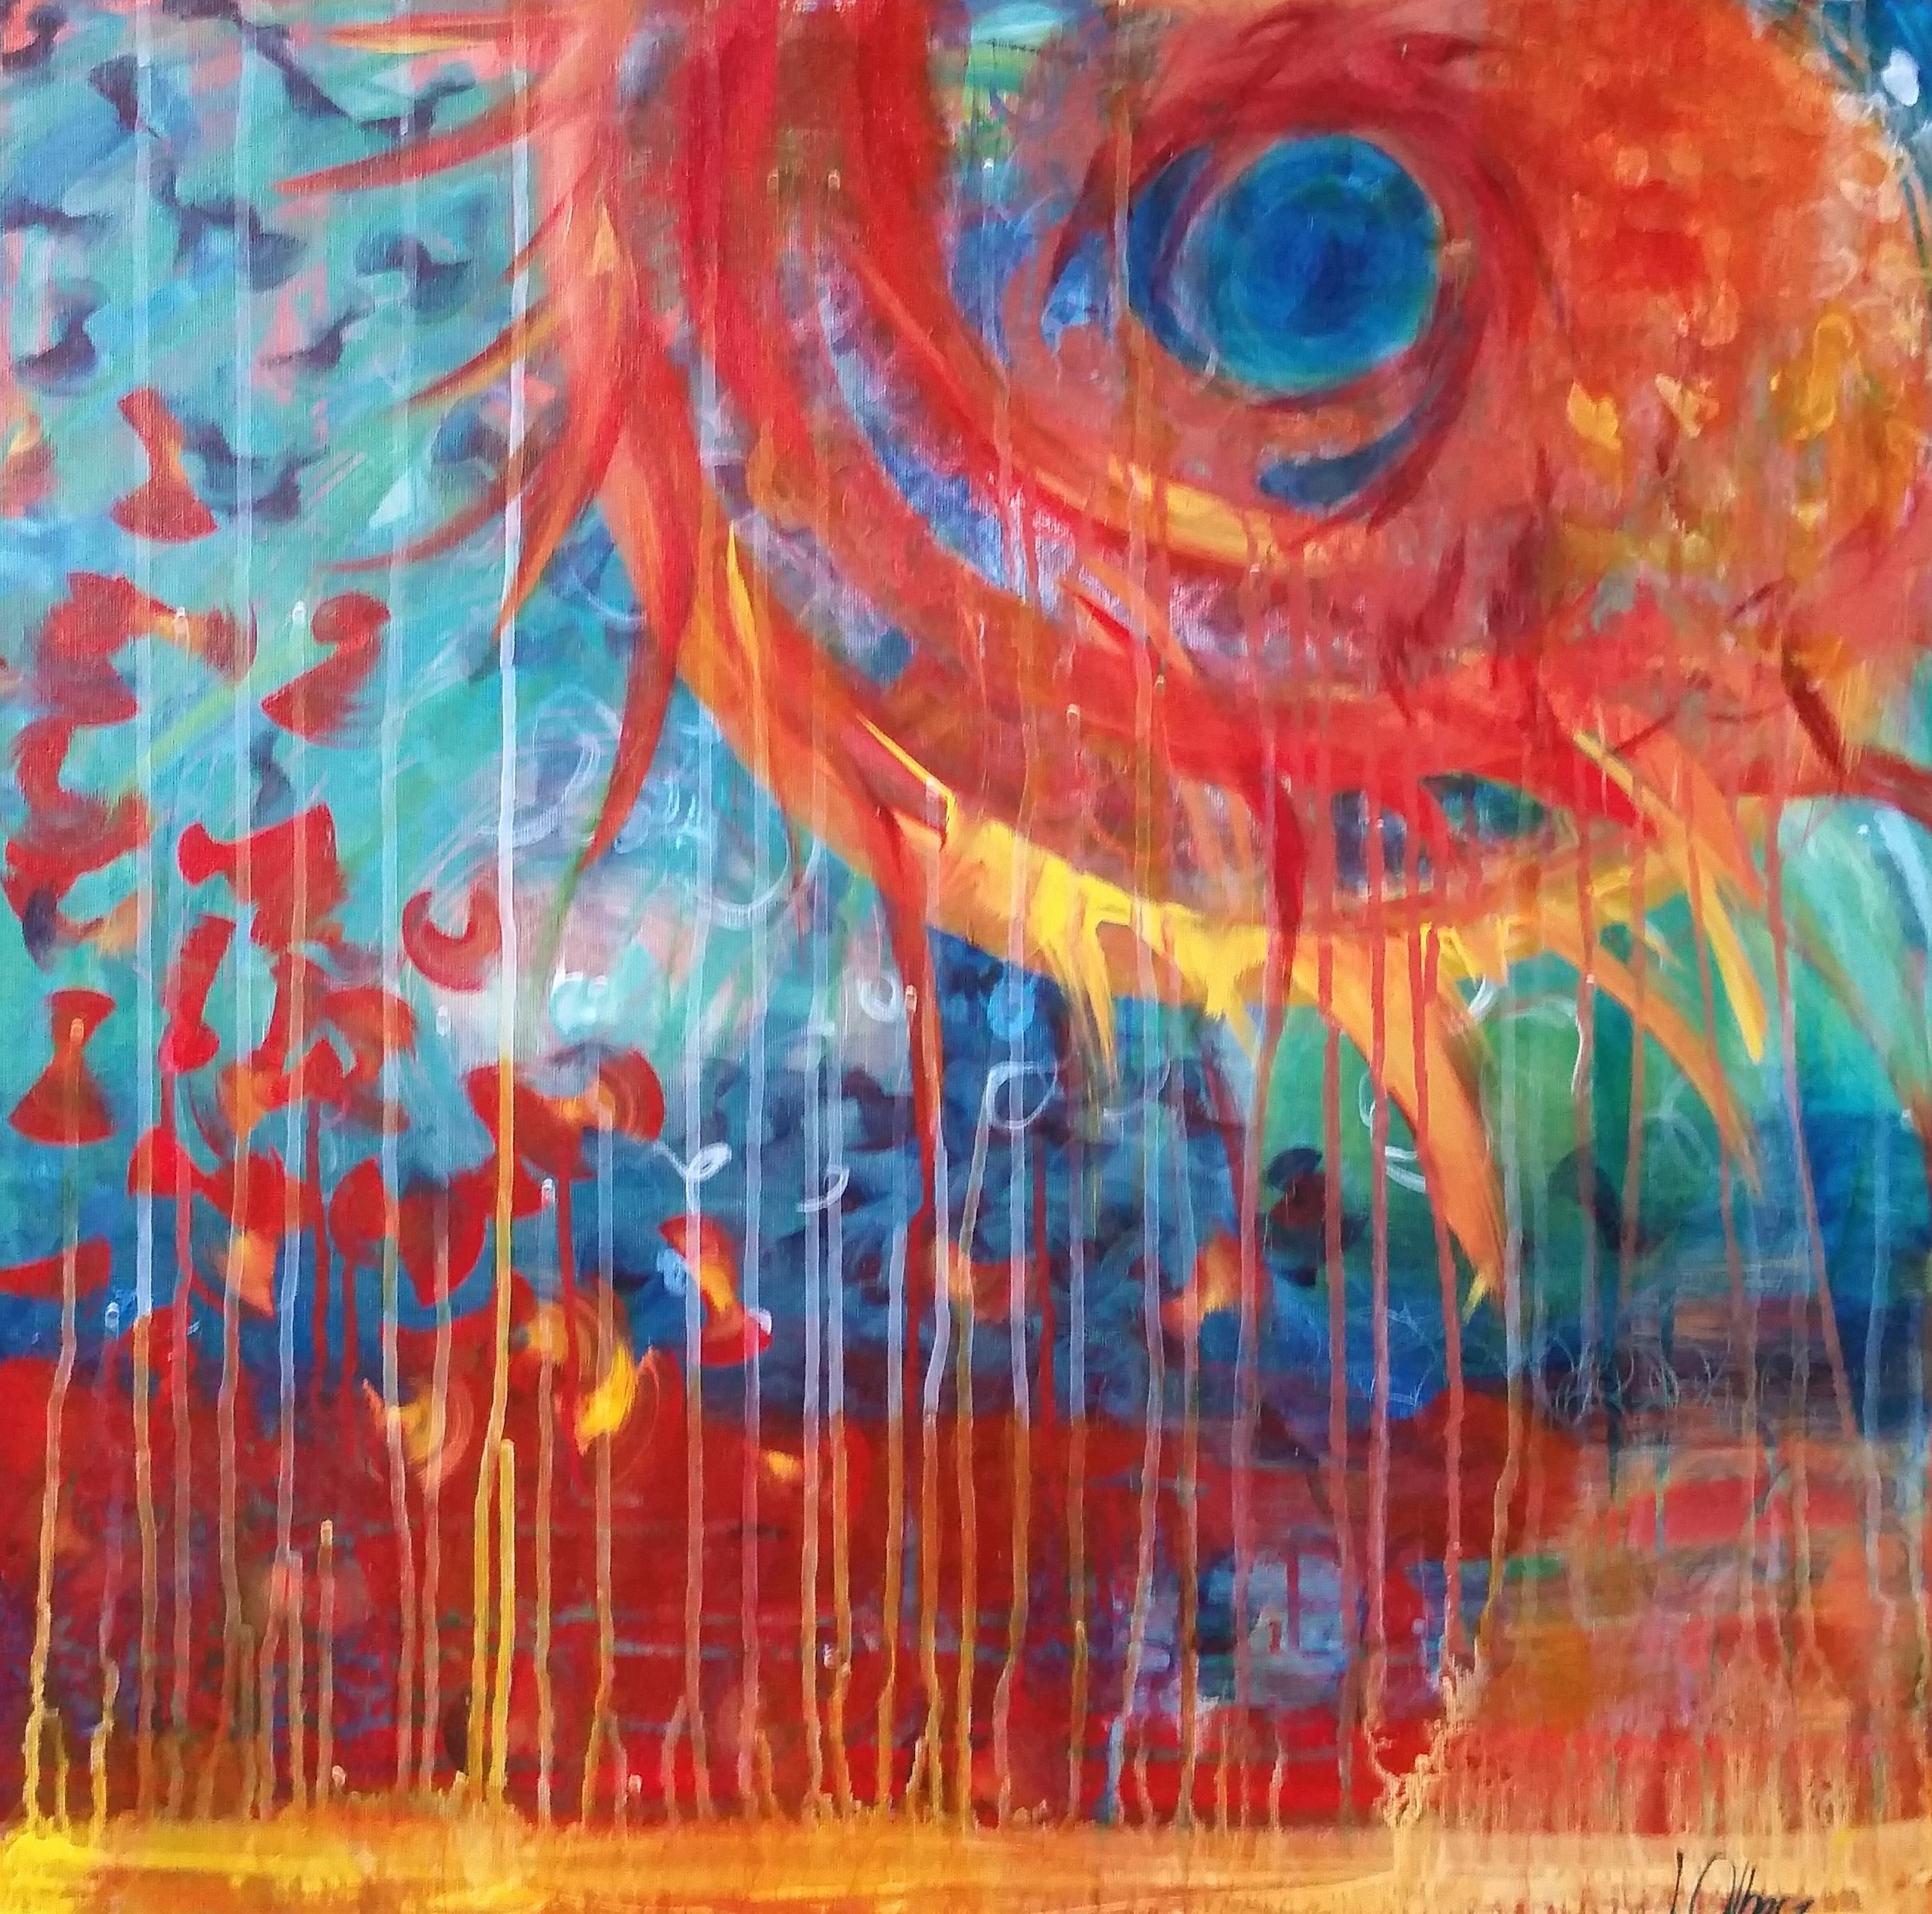 """Spinning Sun"" by Jessica Olberz Singleton, 24x24in, acrylic on canvas, $85 